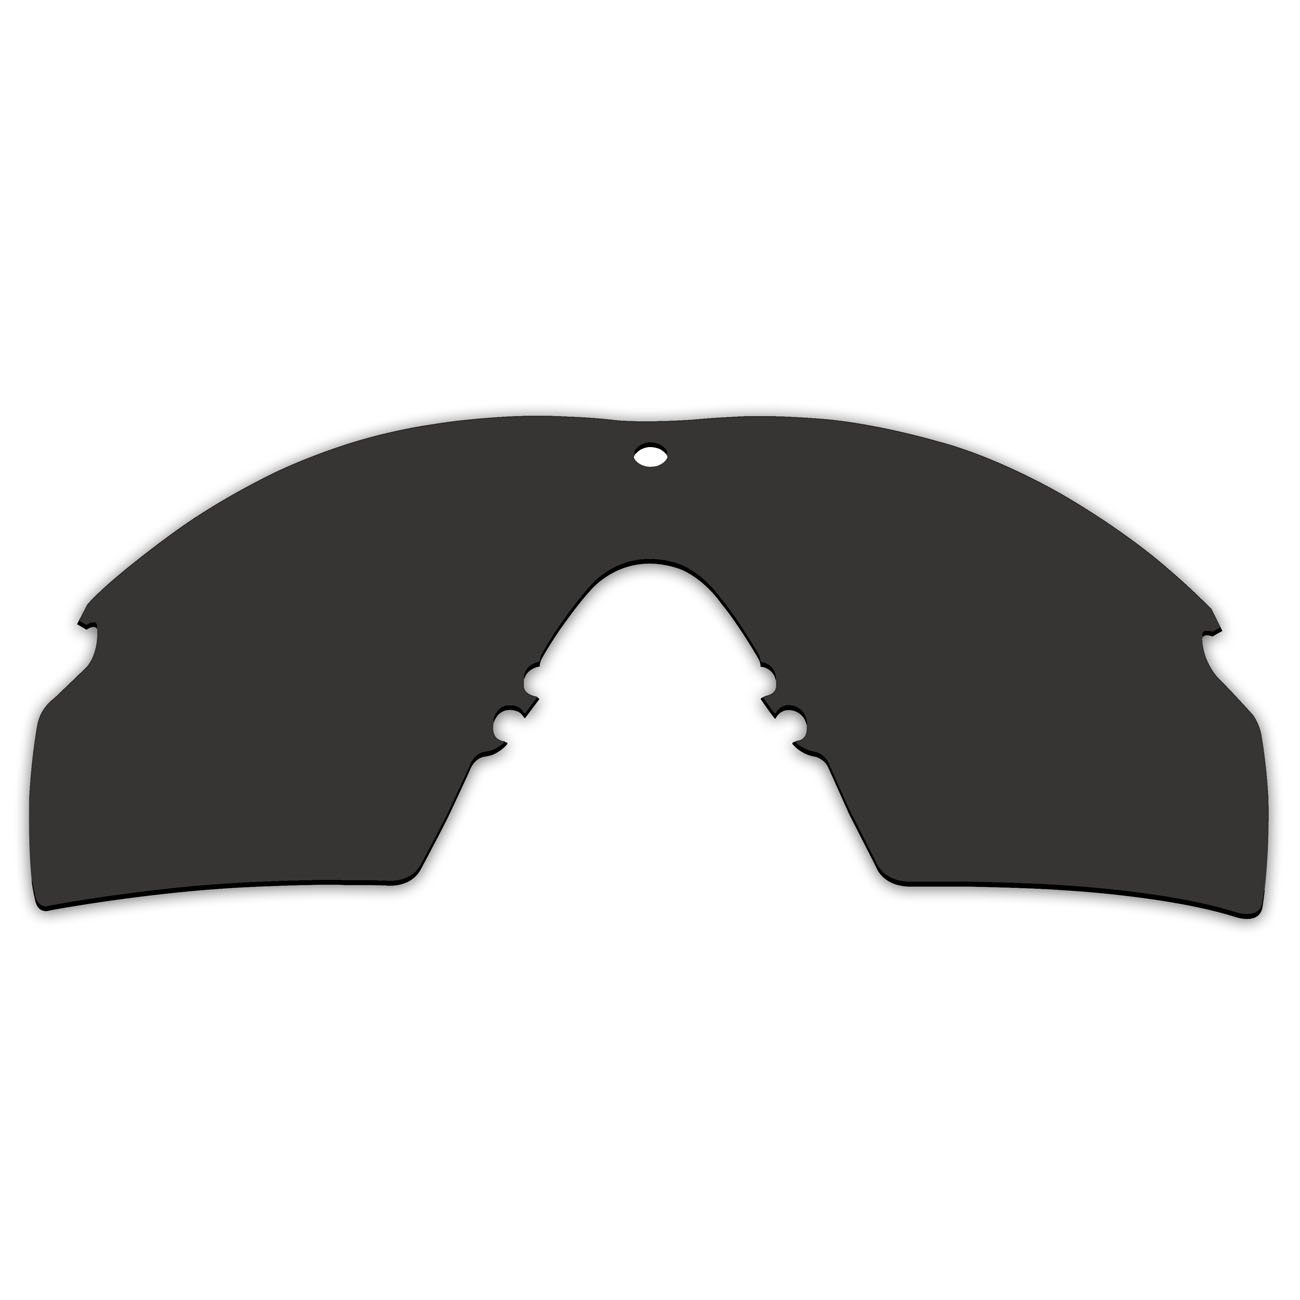 37a1f2b4ca Amazon.com   ACOMPATIBLE Replacement Lenses for Oakley Industrial M Frame  2.0 (2016 Year) Sunglasses OO9213 (Black - Polarized)   Sports   Outdoors